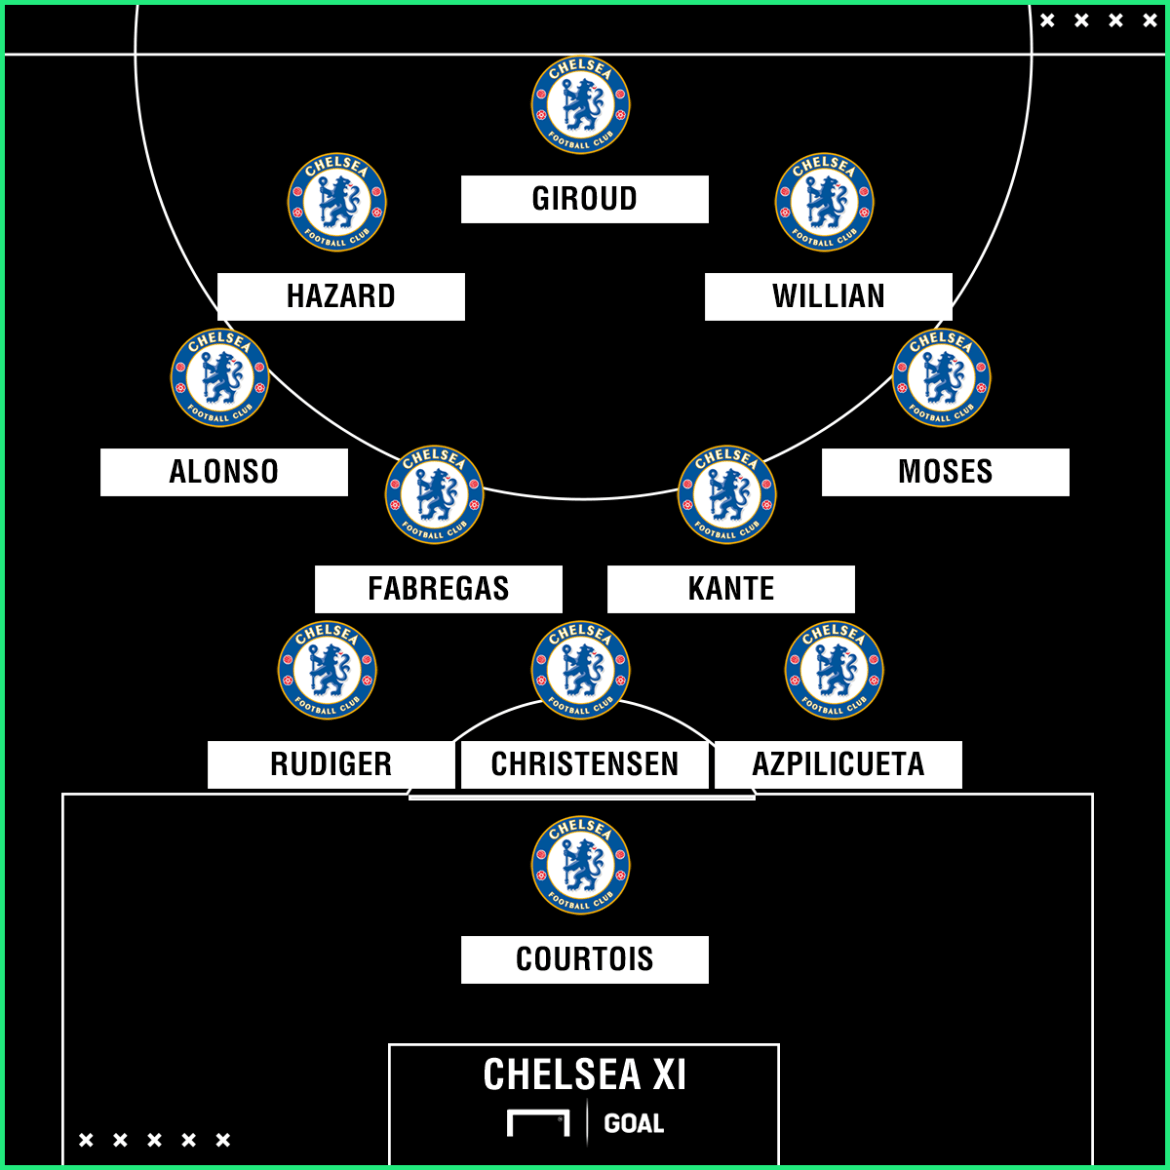 Chelsea XI to face Palace